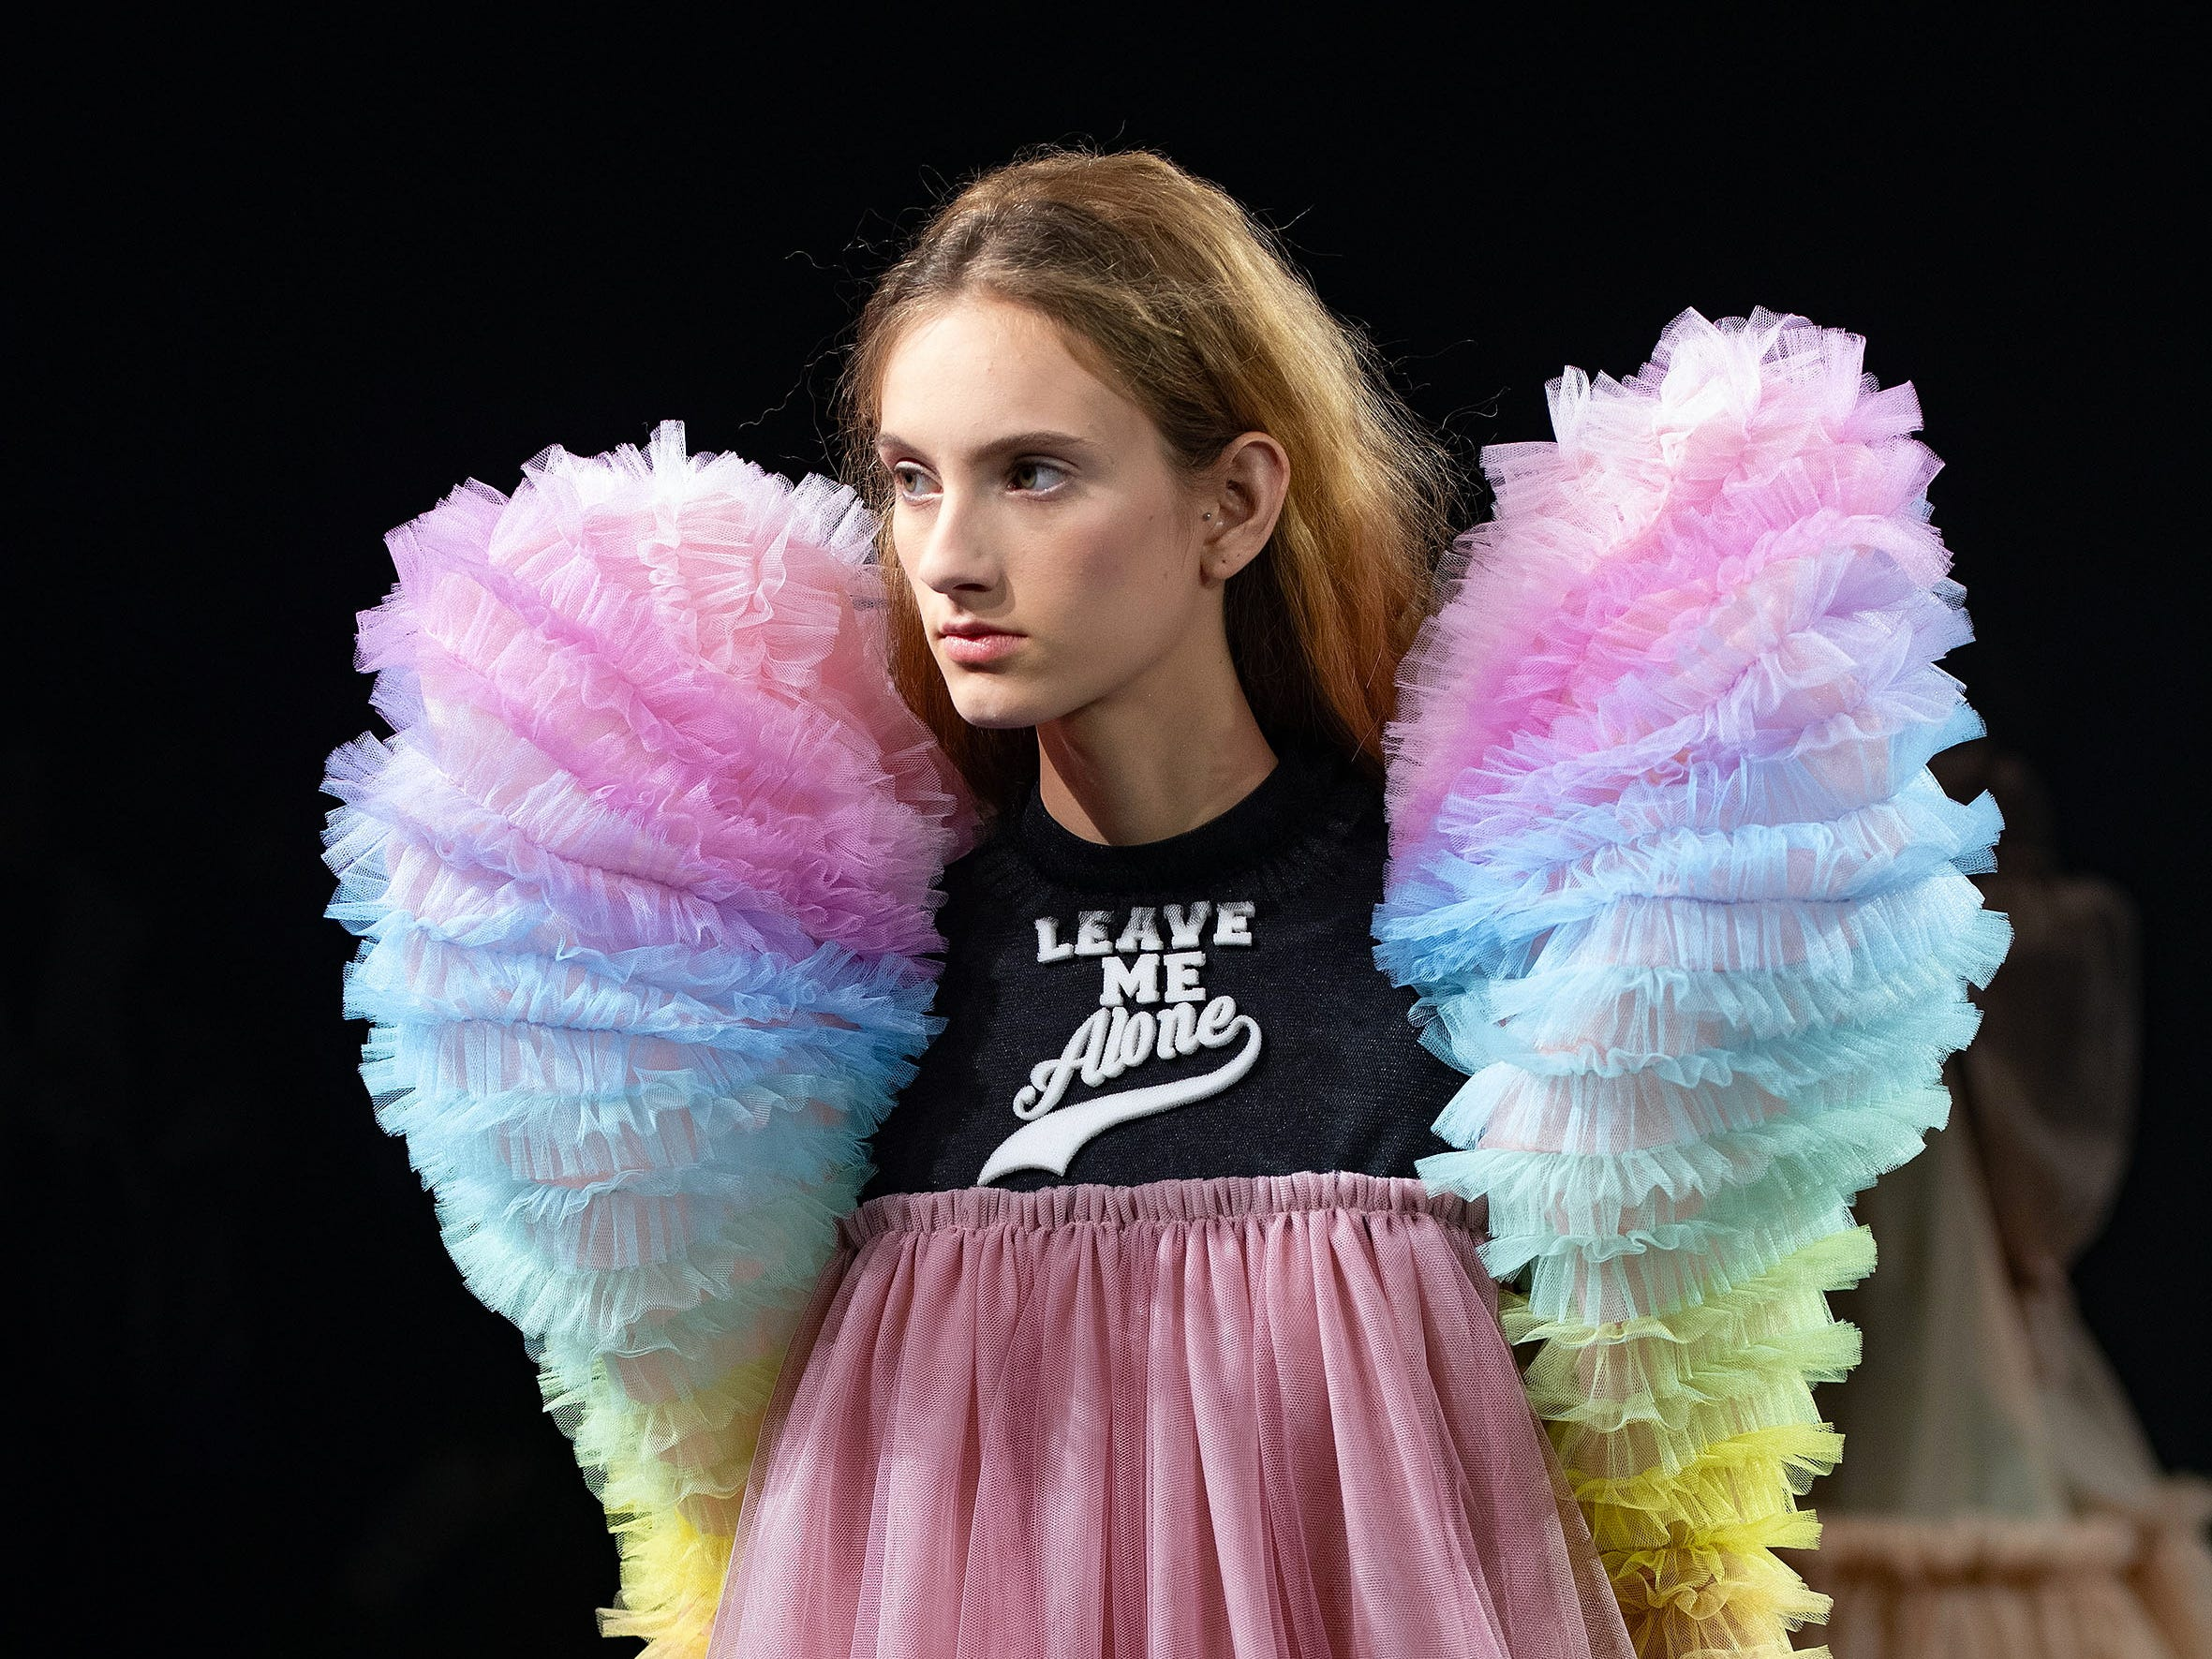 This Viktor & Rolf design, which featured rainbow-hued, Elizabethan-style sleeves, was similarly antisocial.